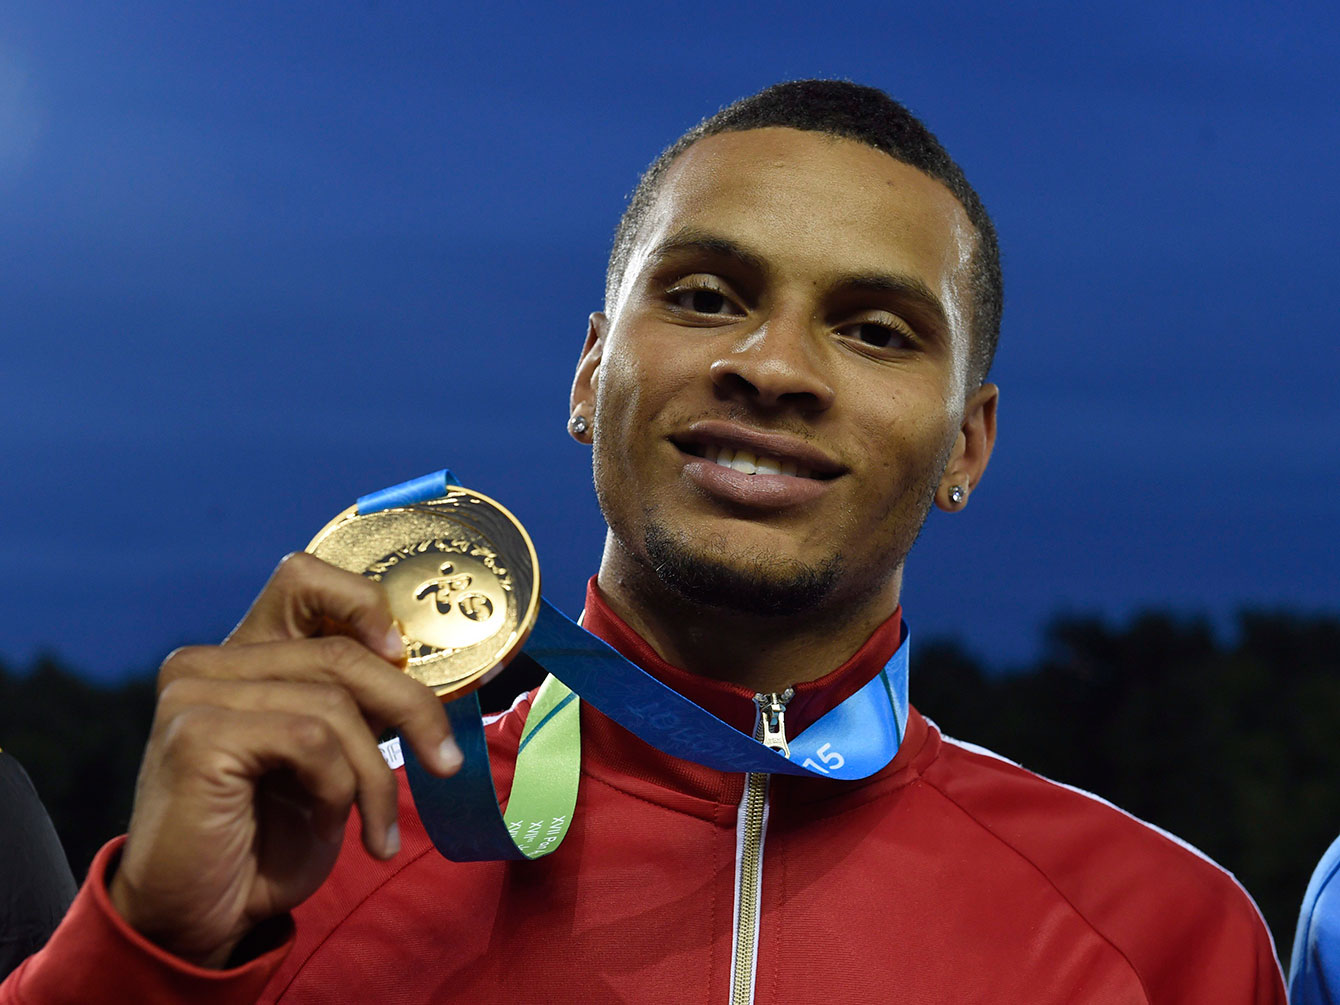 Andre De Grasse holds up his 200m Pan Am Games gold medal on July 24, 2015 in Toronto.